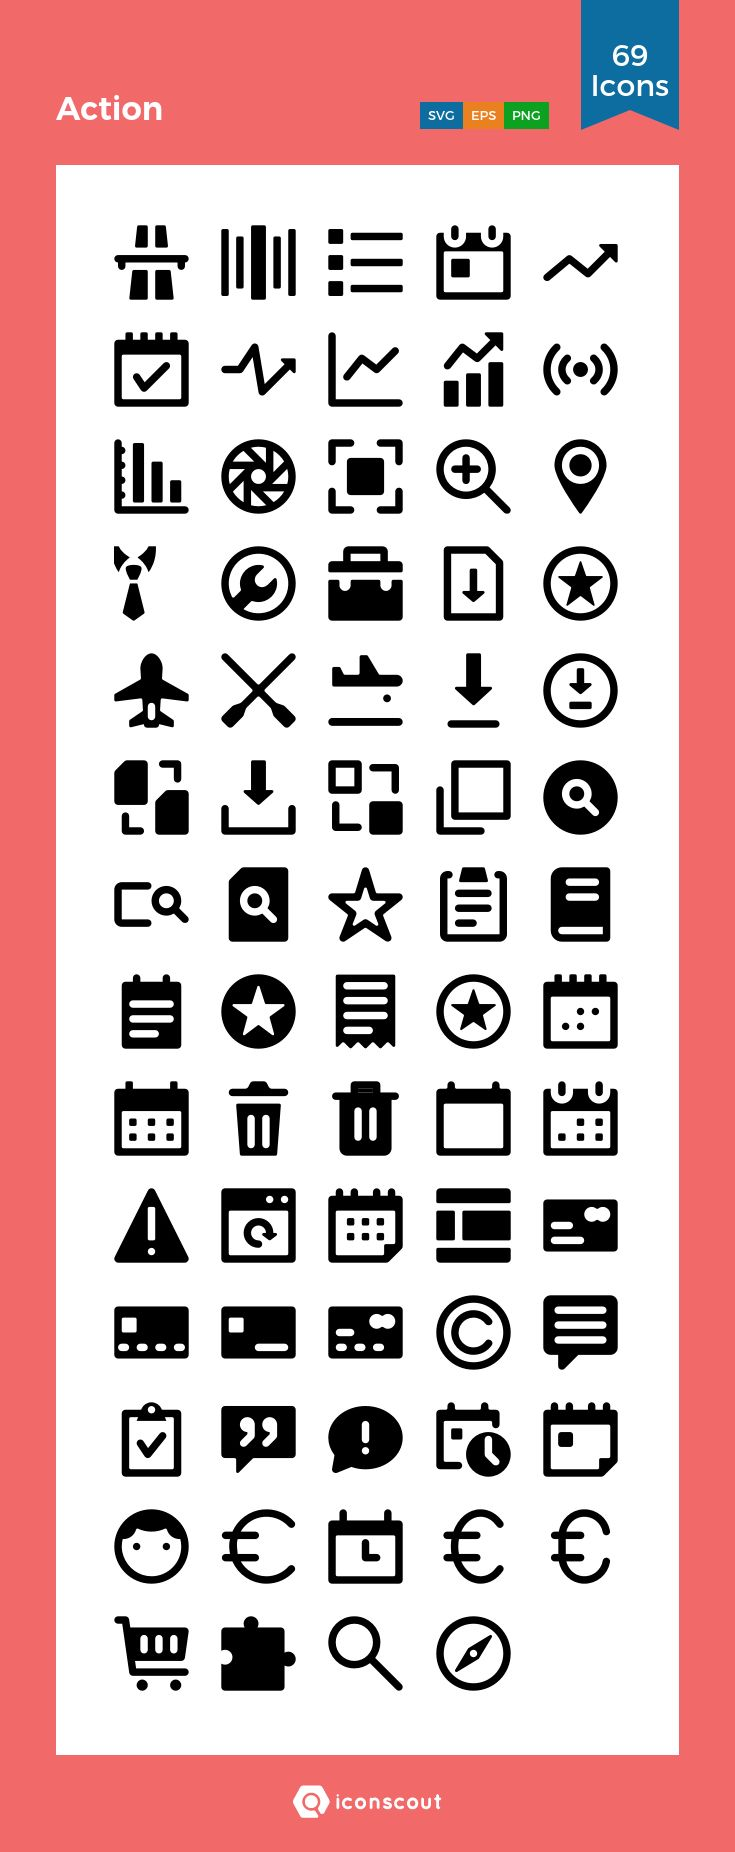 Action  Icon Pack - 69 Solid Icons